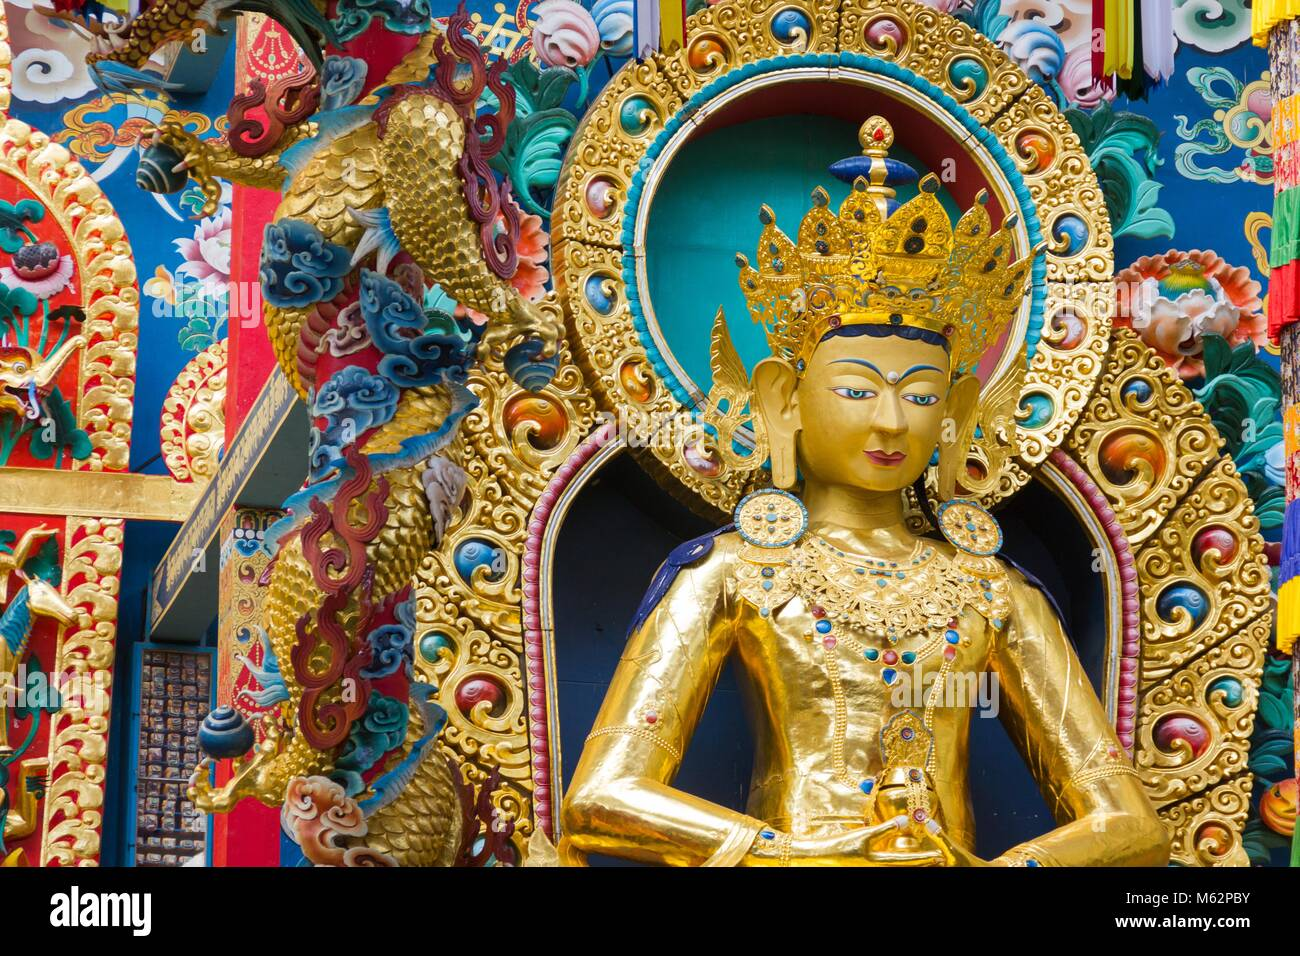 Buddha Amitayus golden statue at Namdroling Monastery in Bylakuppe, Karnataka, India. Tibetan Buddhist religion Stock Photo